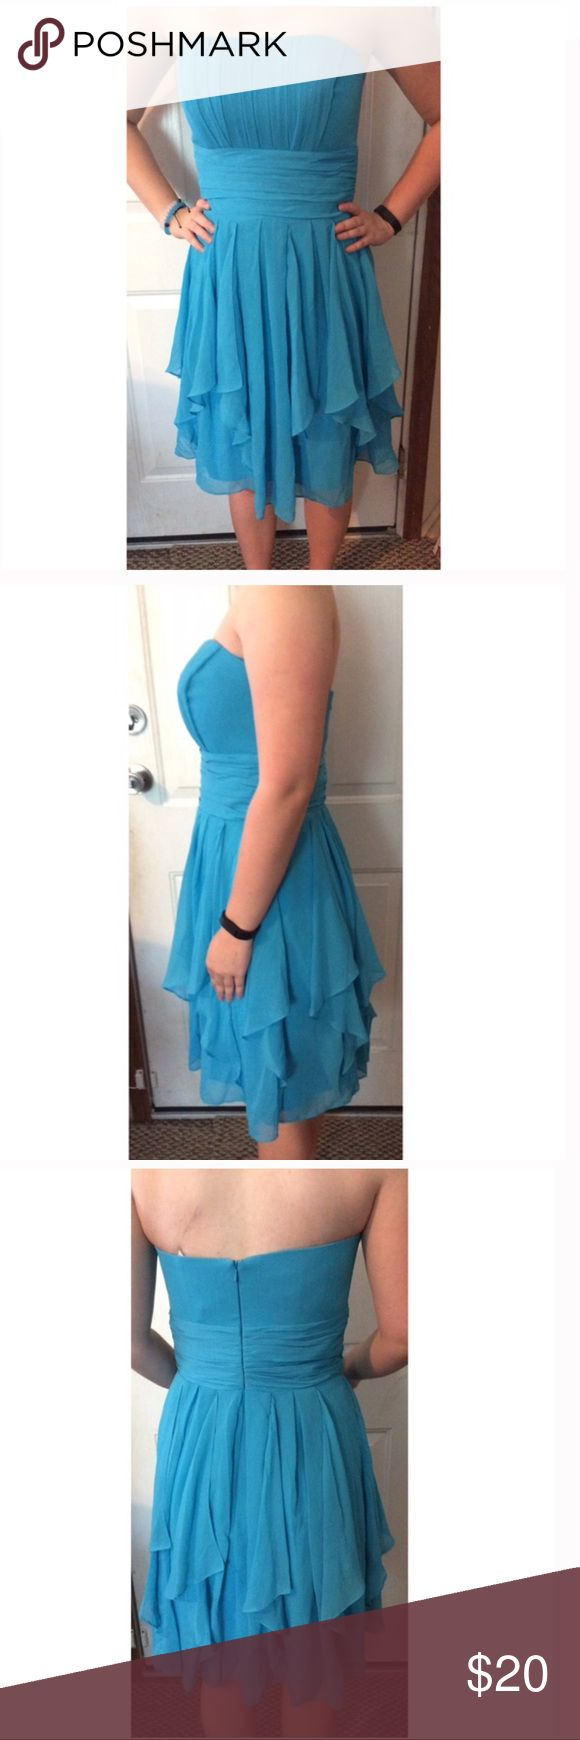 Turquoise Blue David's Bridal Strapless Dress Super cute dress, great condition. Ruffle bottom. 100% polyester. Structured top, fully lined underneath. 32.5 inches long. No trades! David's Bridal Dresses Prom